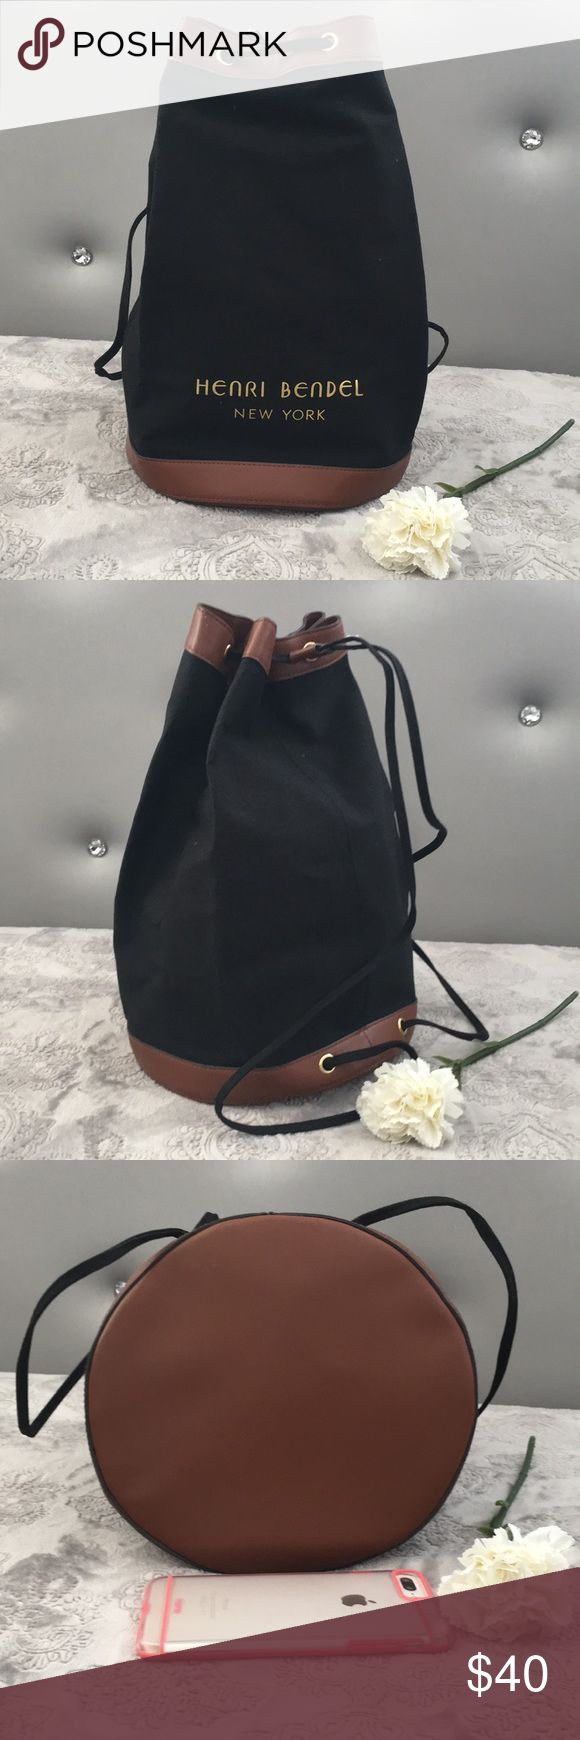 NWOT Henri Bendel canvas/leather promotional bag Promotional drawstring canvas backpack with vinyl lining and leather trim by Henri Bendel. Never used. Comes from a smoke free home. henri bendel Bags Backpacks